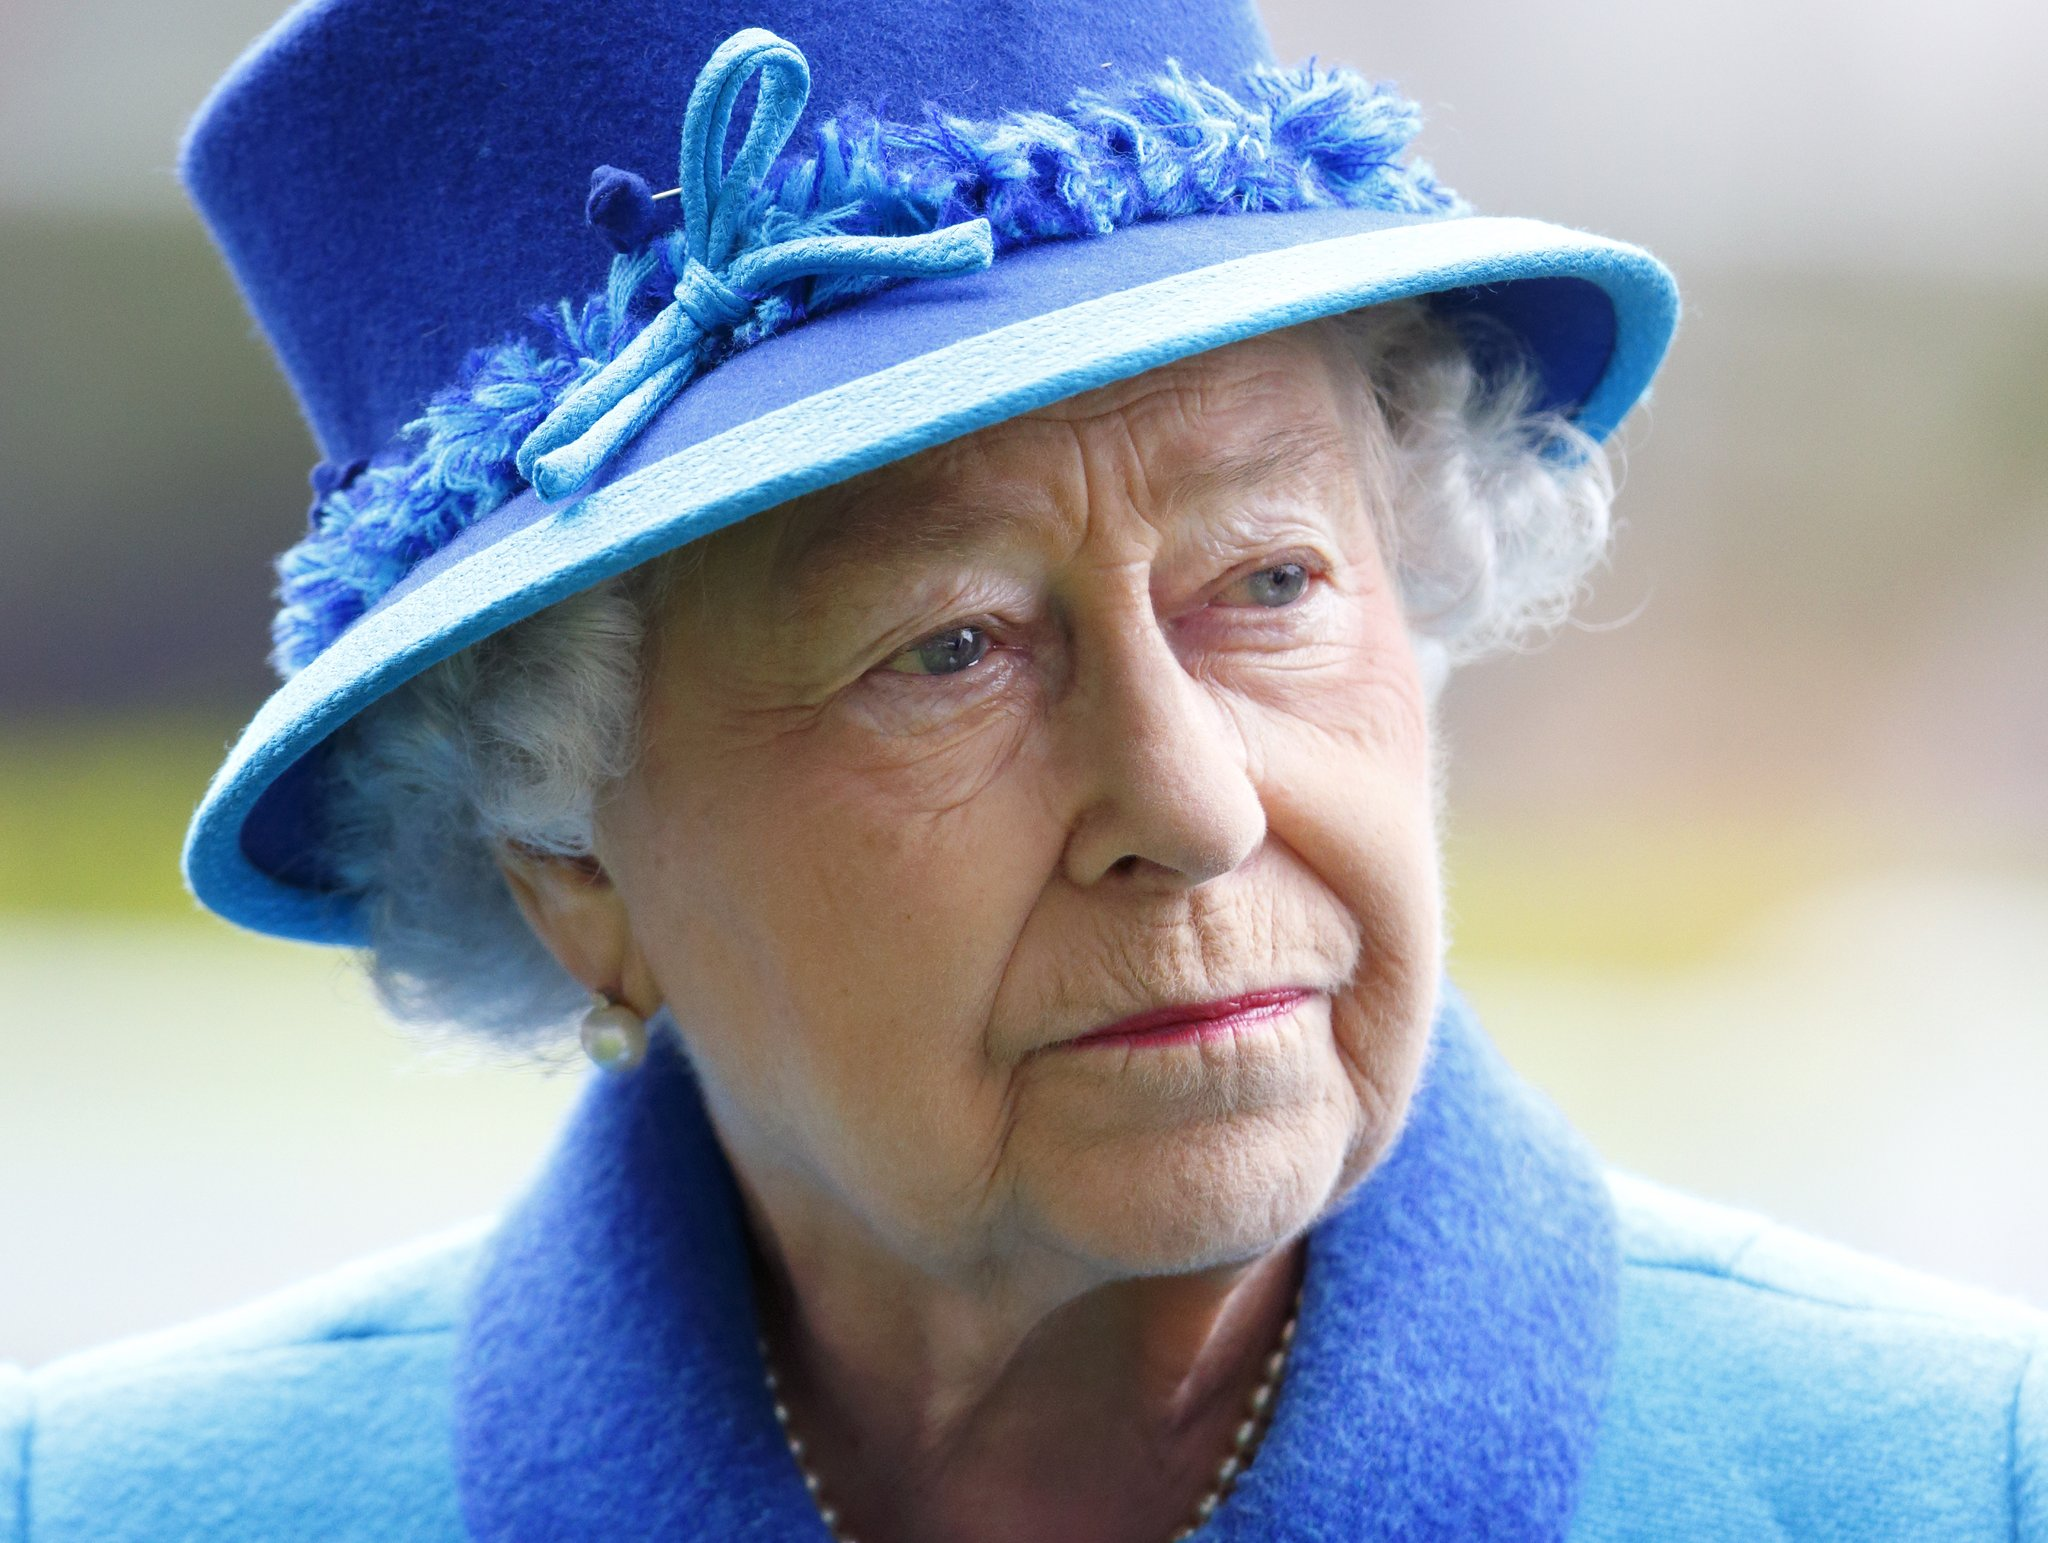 barbados-to-remove-uks-queen-elizabeth-ii-as-head-of-state-next-year Photo